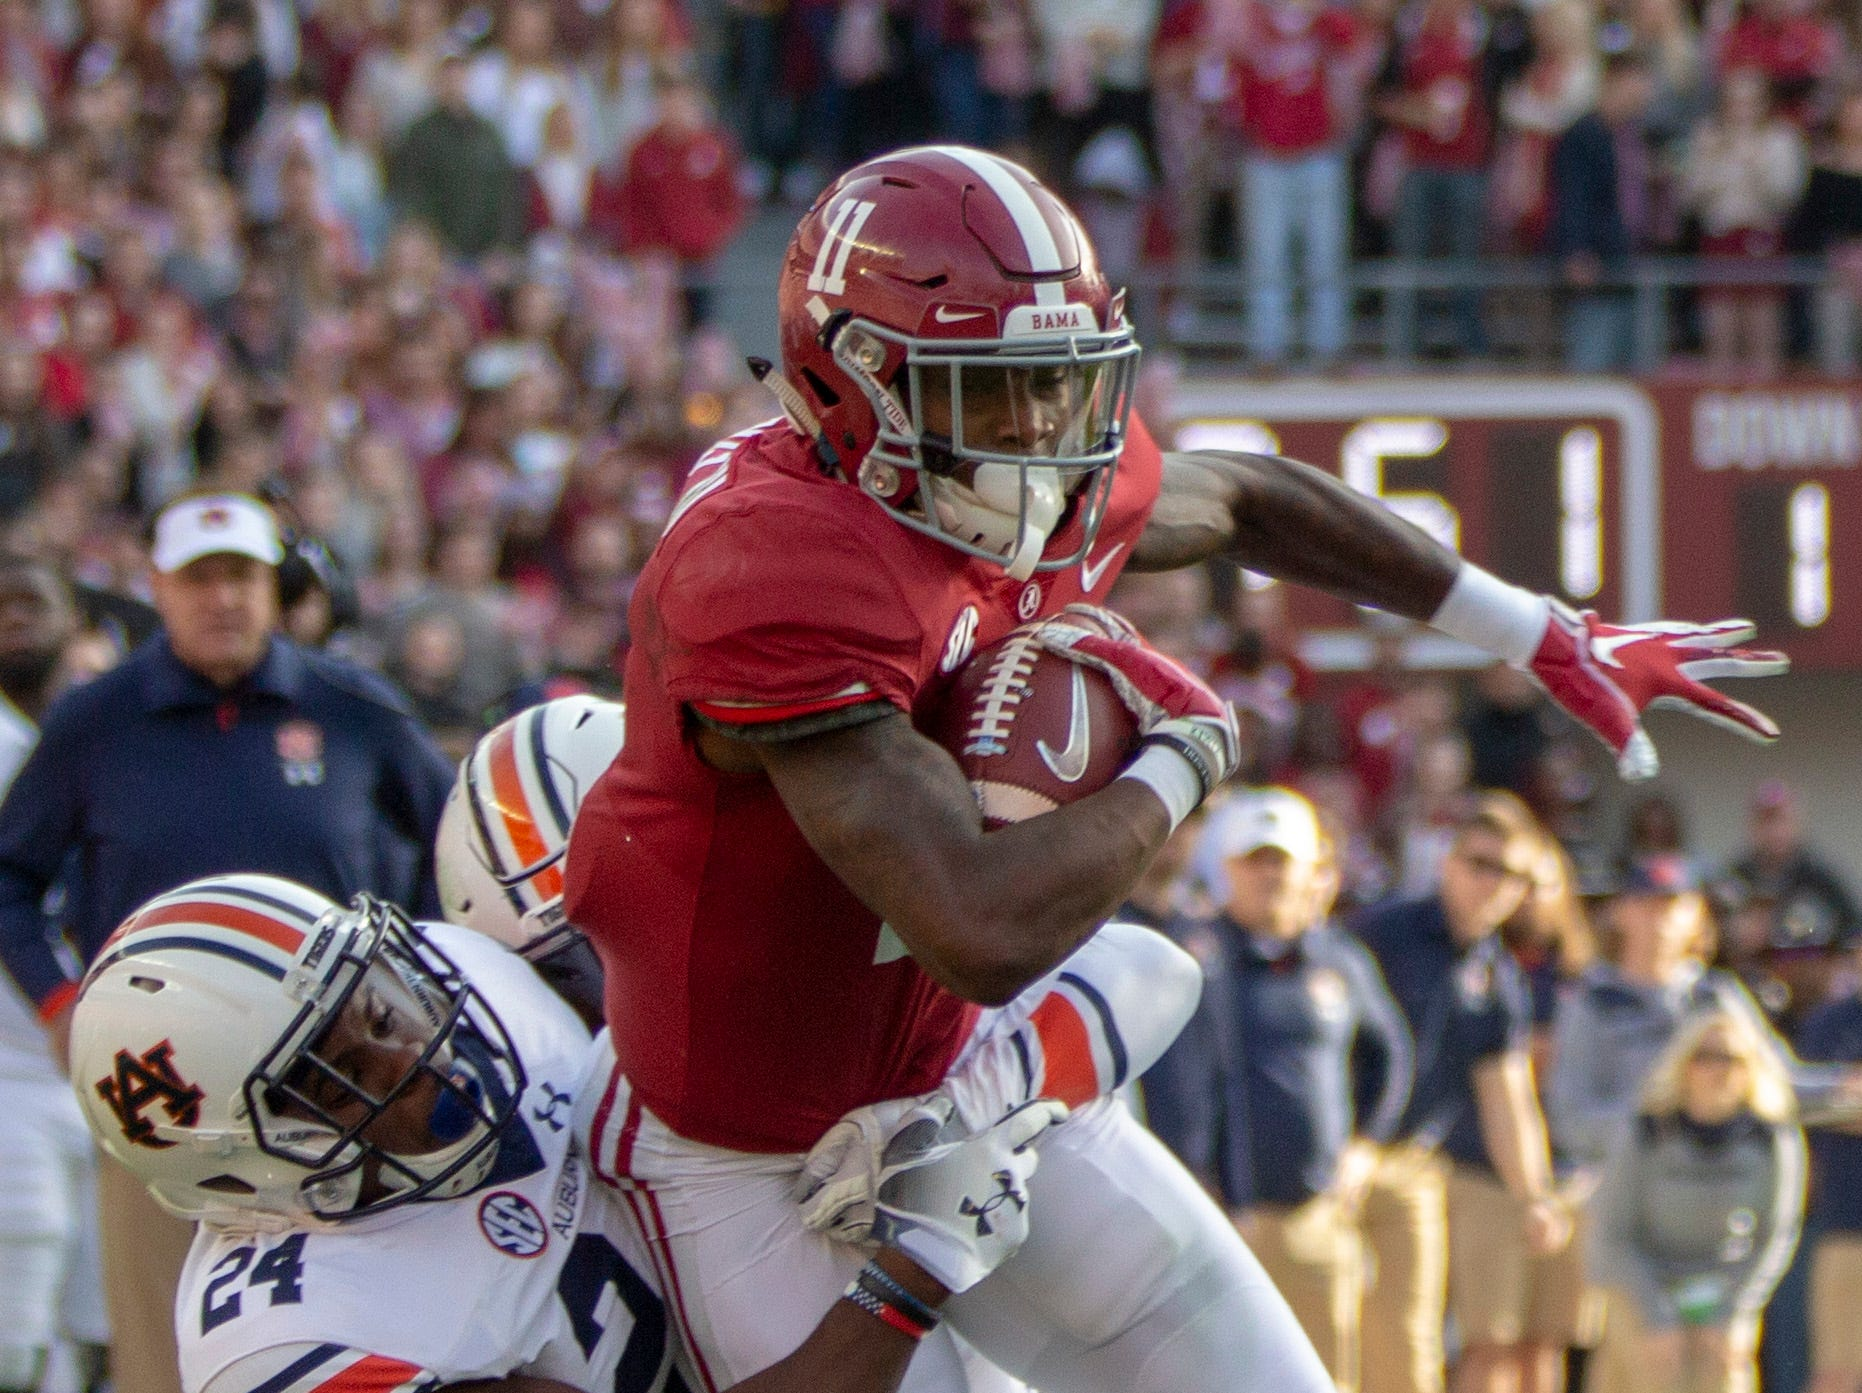 Alabama's Henry Ruggs III is brought down by Auburn's Daniel Thomas during a play in the first quarter.